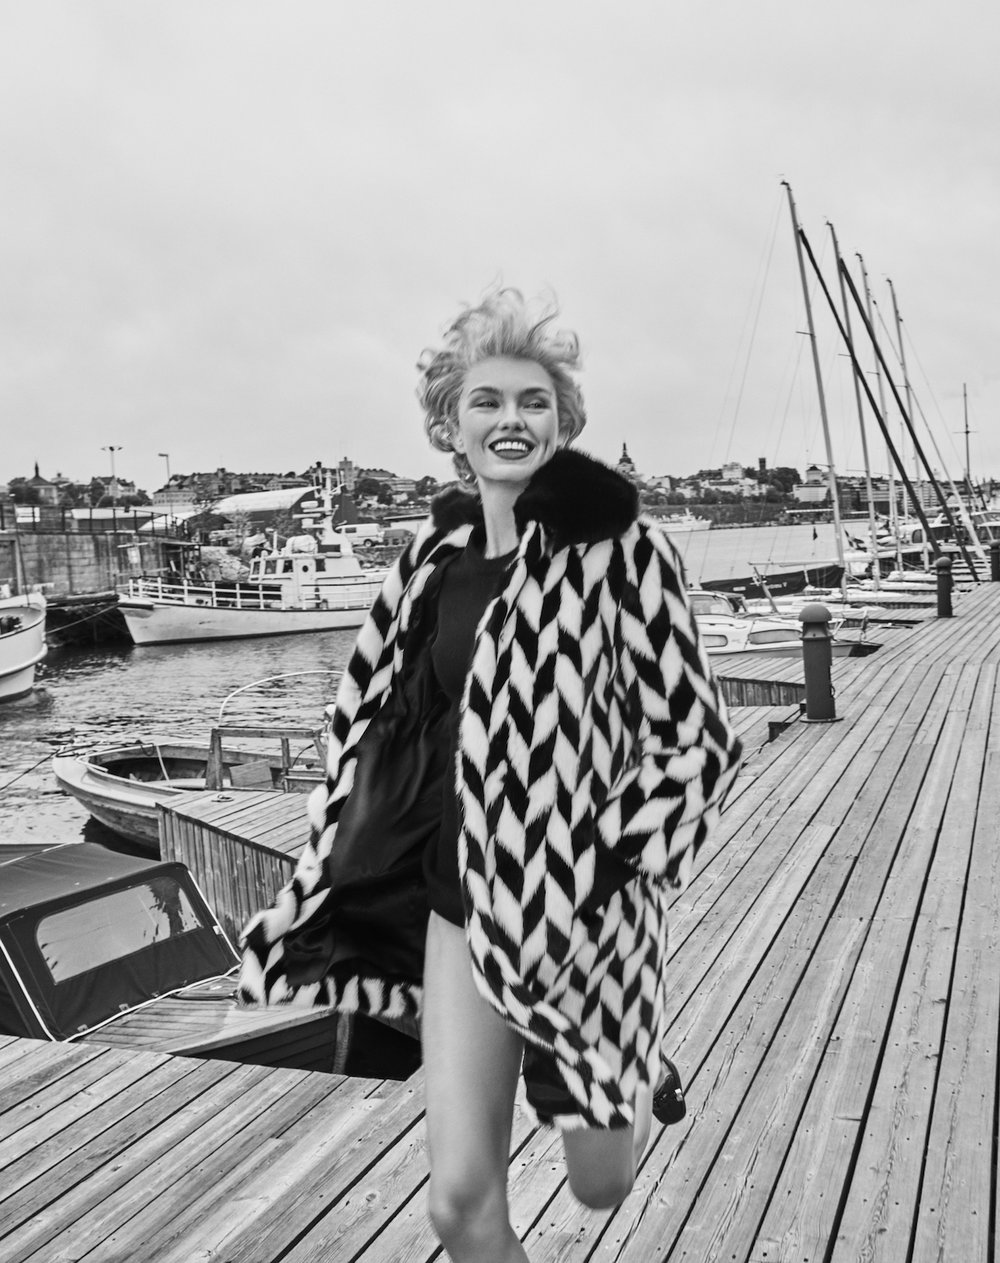 My Weekend Cruise_Vogue Japan_December 2016_Mariano Vivanco-5.jpeg